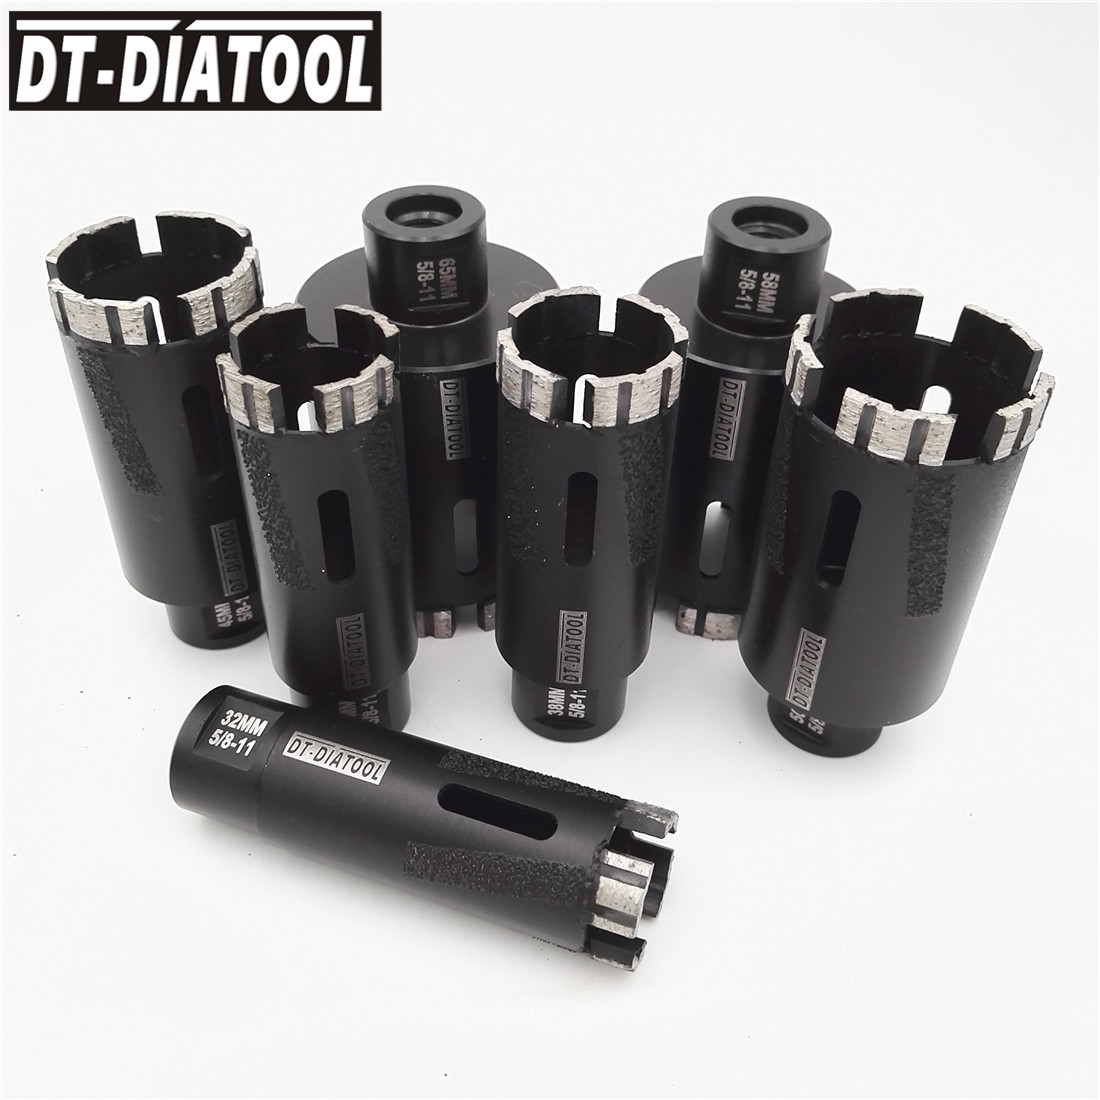 цена на DT-DIATOOL 1pc Laser Welded Diamond Dry Drilling Core Bits with 5/8-11 Connection Drill Bits For granite or Stone or Concrete